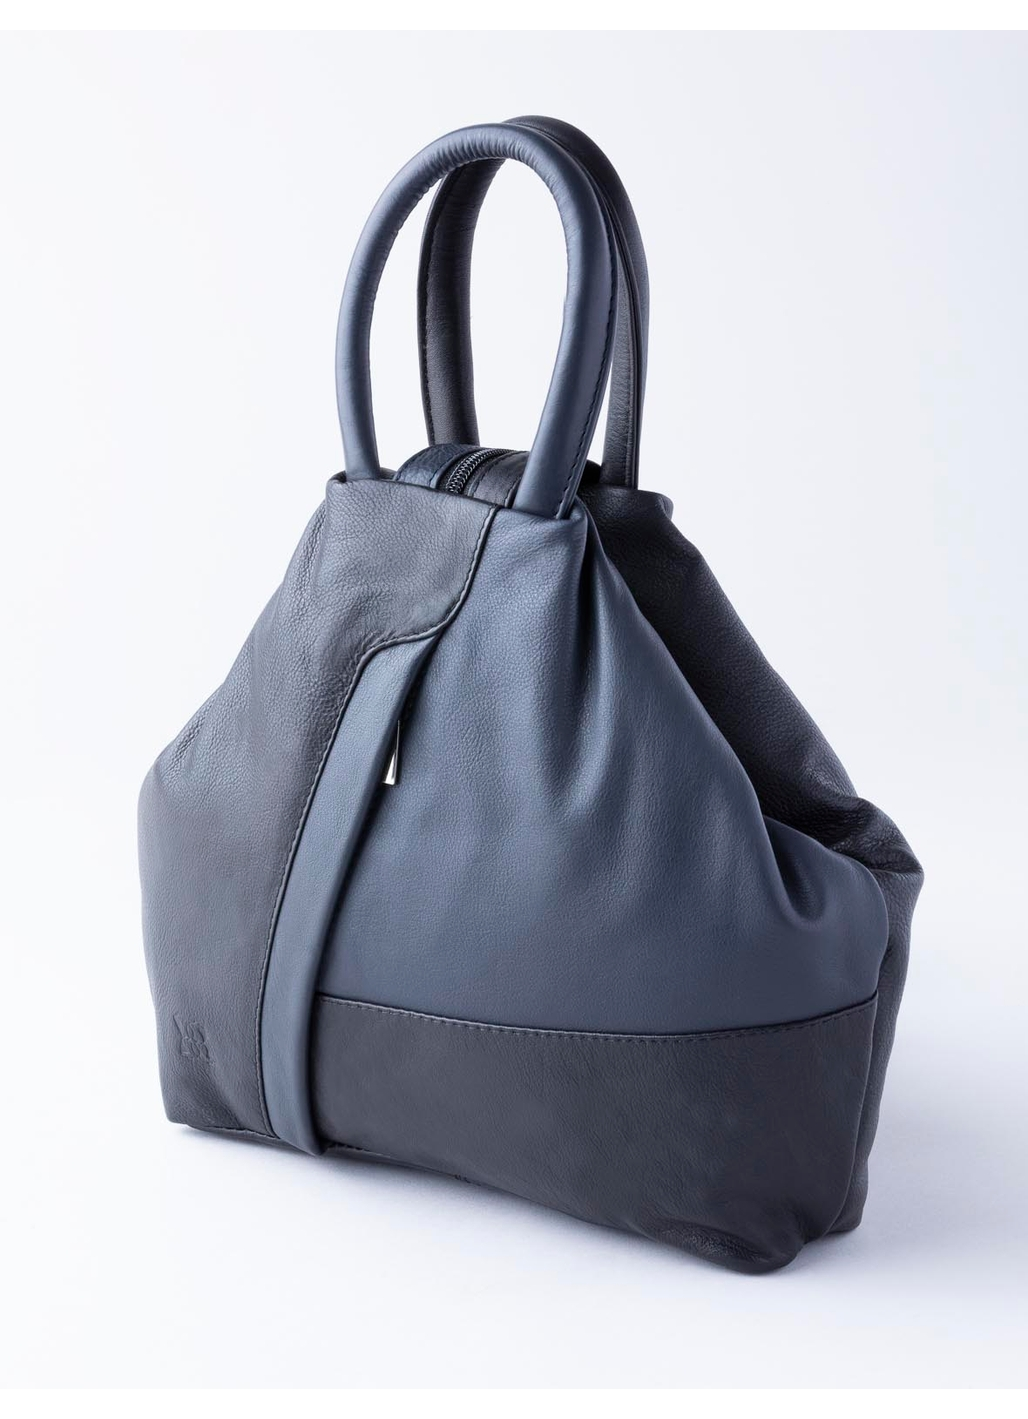 Juliet Leather Backpack in Black and Navy